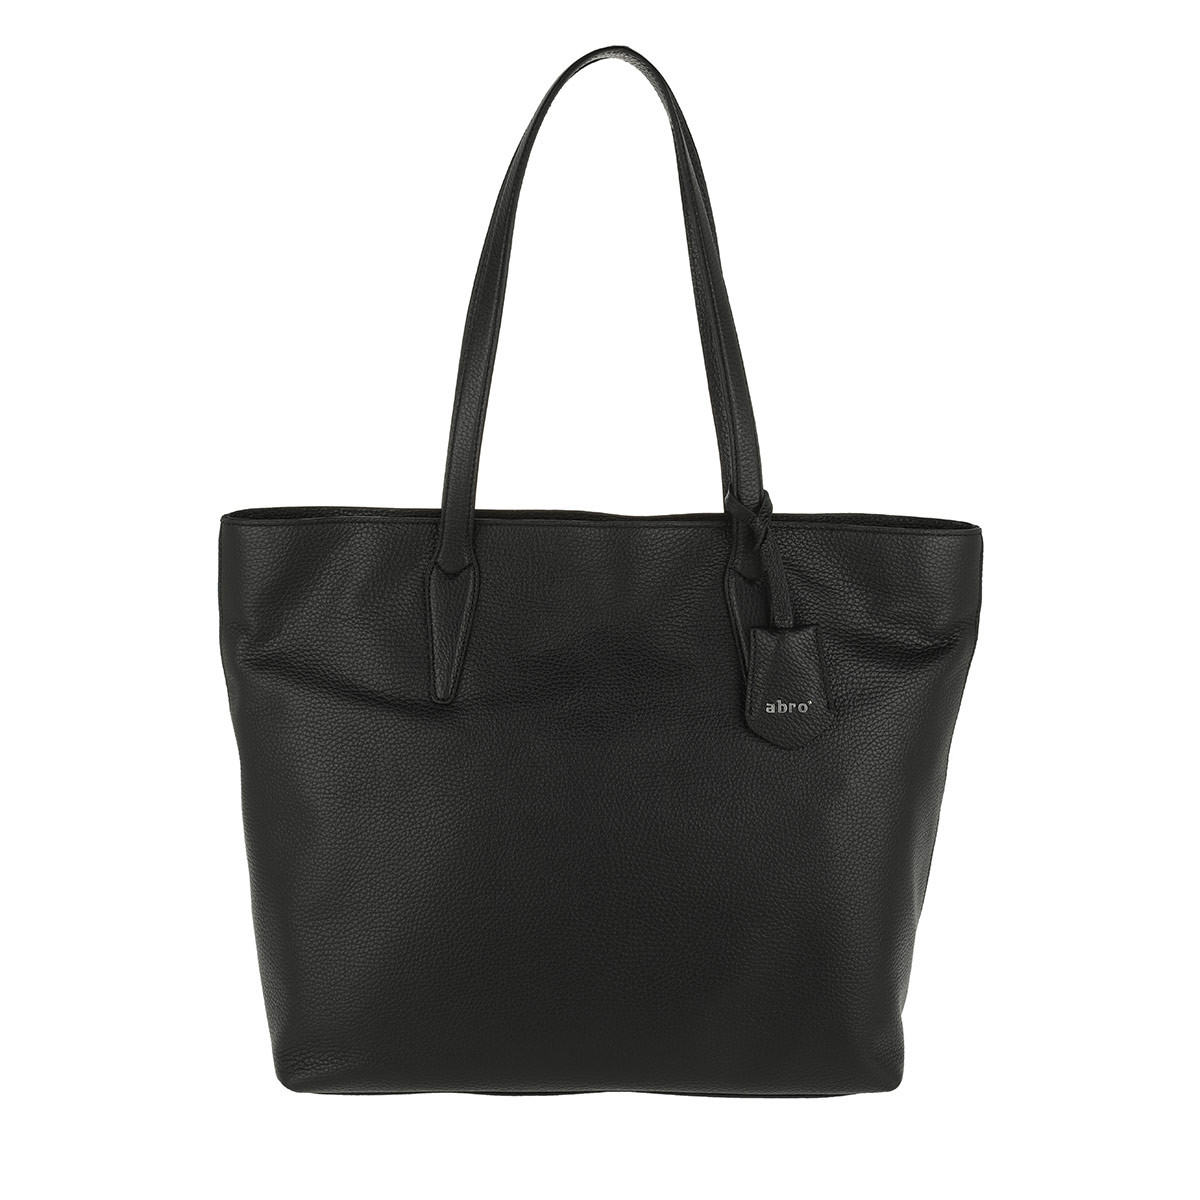 Abro Shopper - Calf Adria Shopper Black/Nickel - in schwarz - für Damen